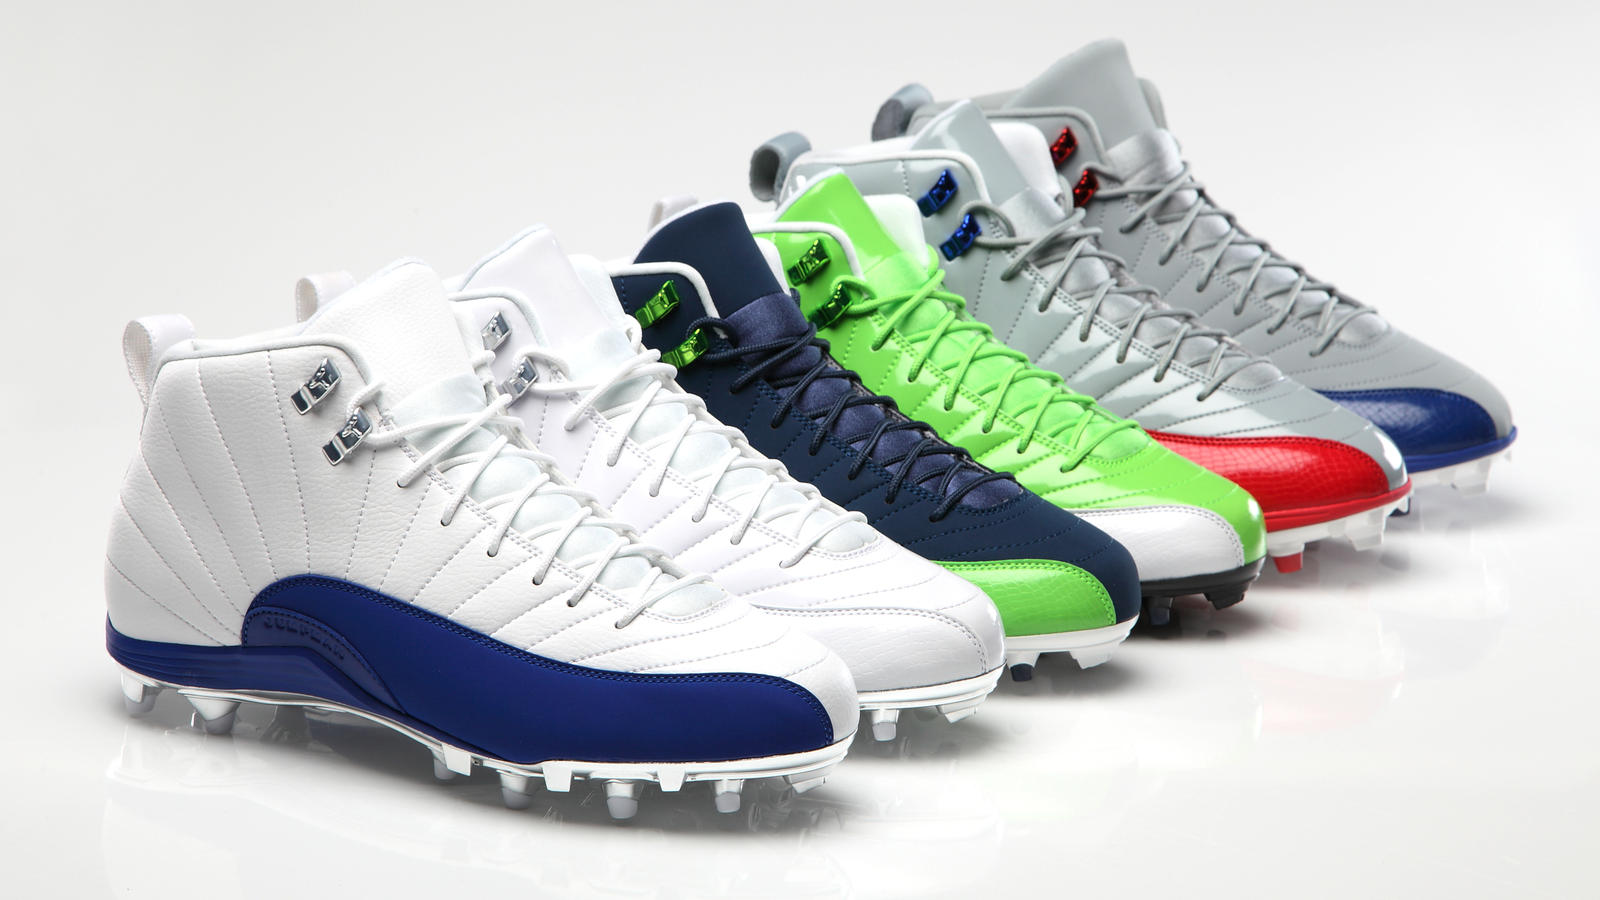 on sale 7095f de2cc AIR JORDAN XII Cleats